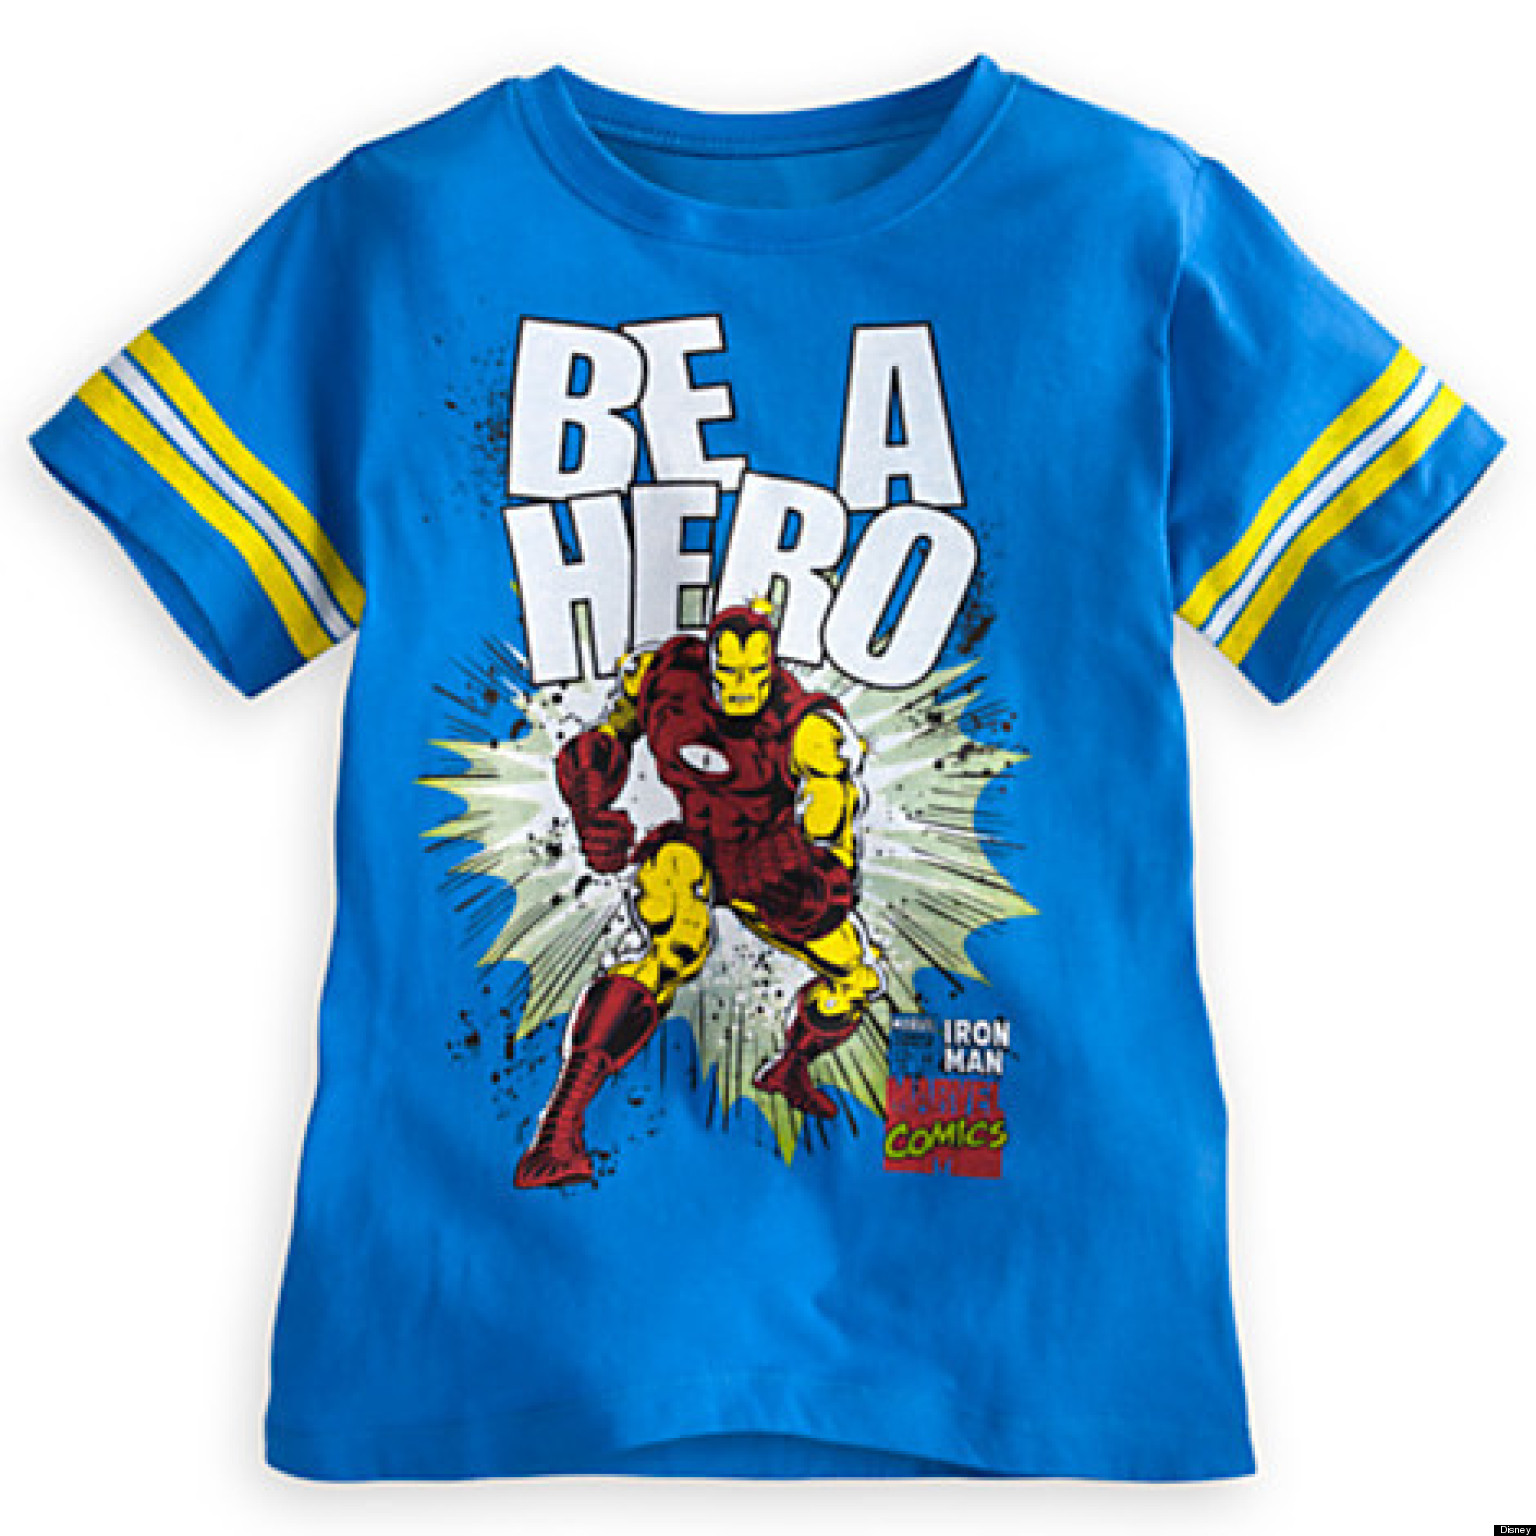 Sexist 39 avengers 39 t shirts tell boys to be heroes and Boys superhero t shirts